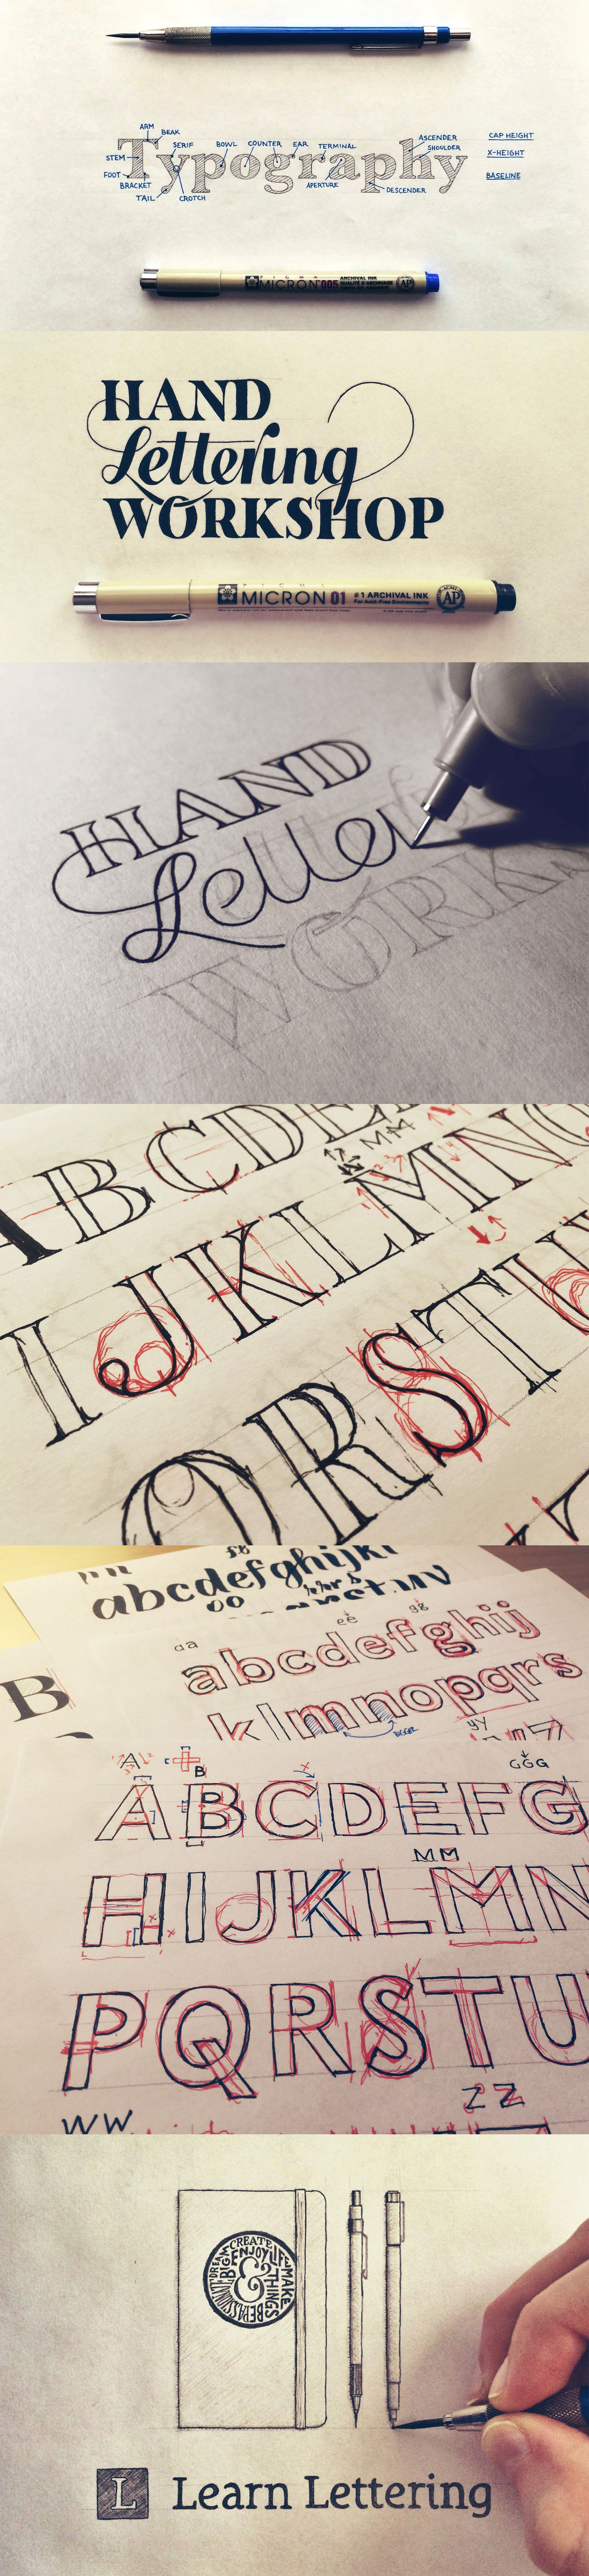 learn hand lettering learn lettering learn lettering 5 courses to learn le 13910 | 4cfd98bf51c7ec0444ecbff4e98e4053